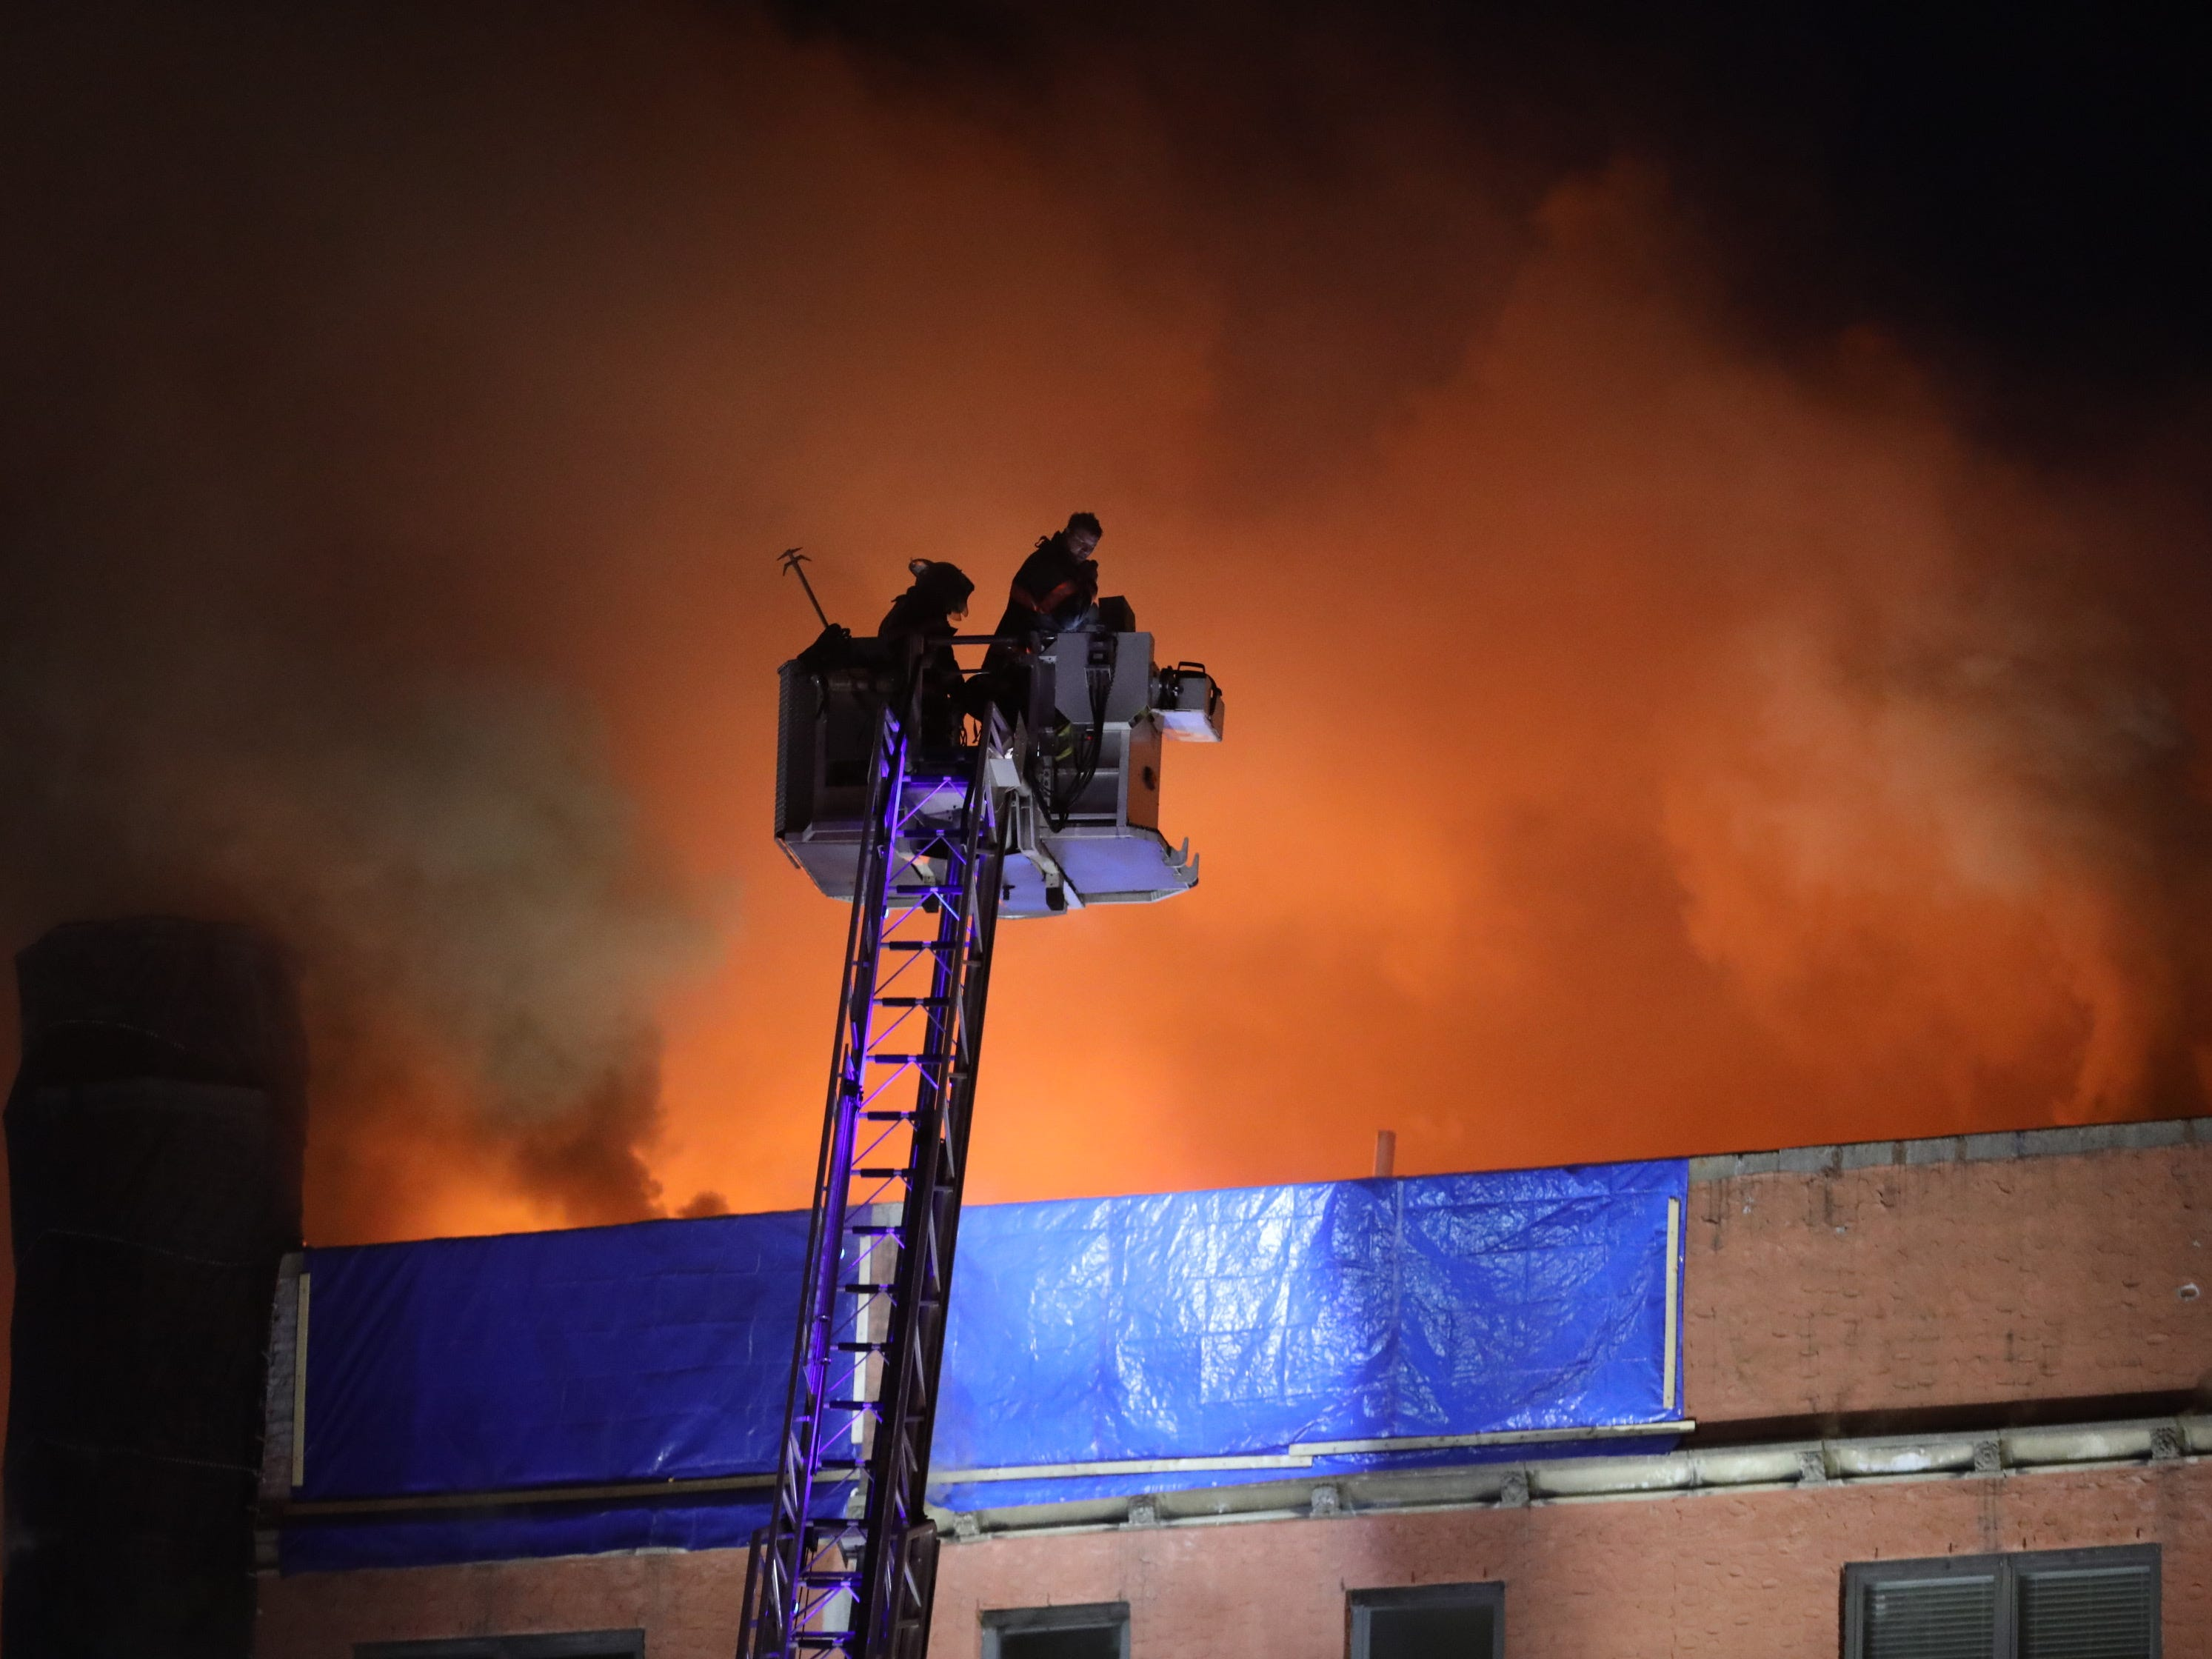 Yonkers firefighters in a tower ladder attack the flames on the roof at 15 Parkview Ave. in Yonkers.